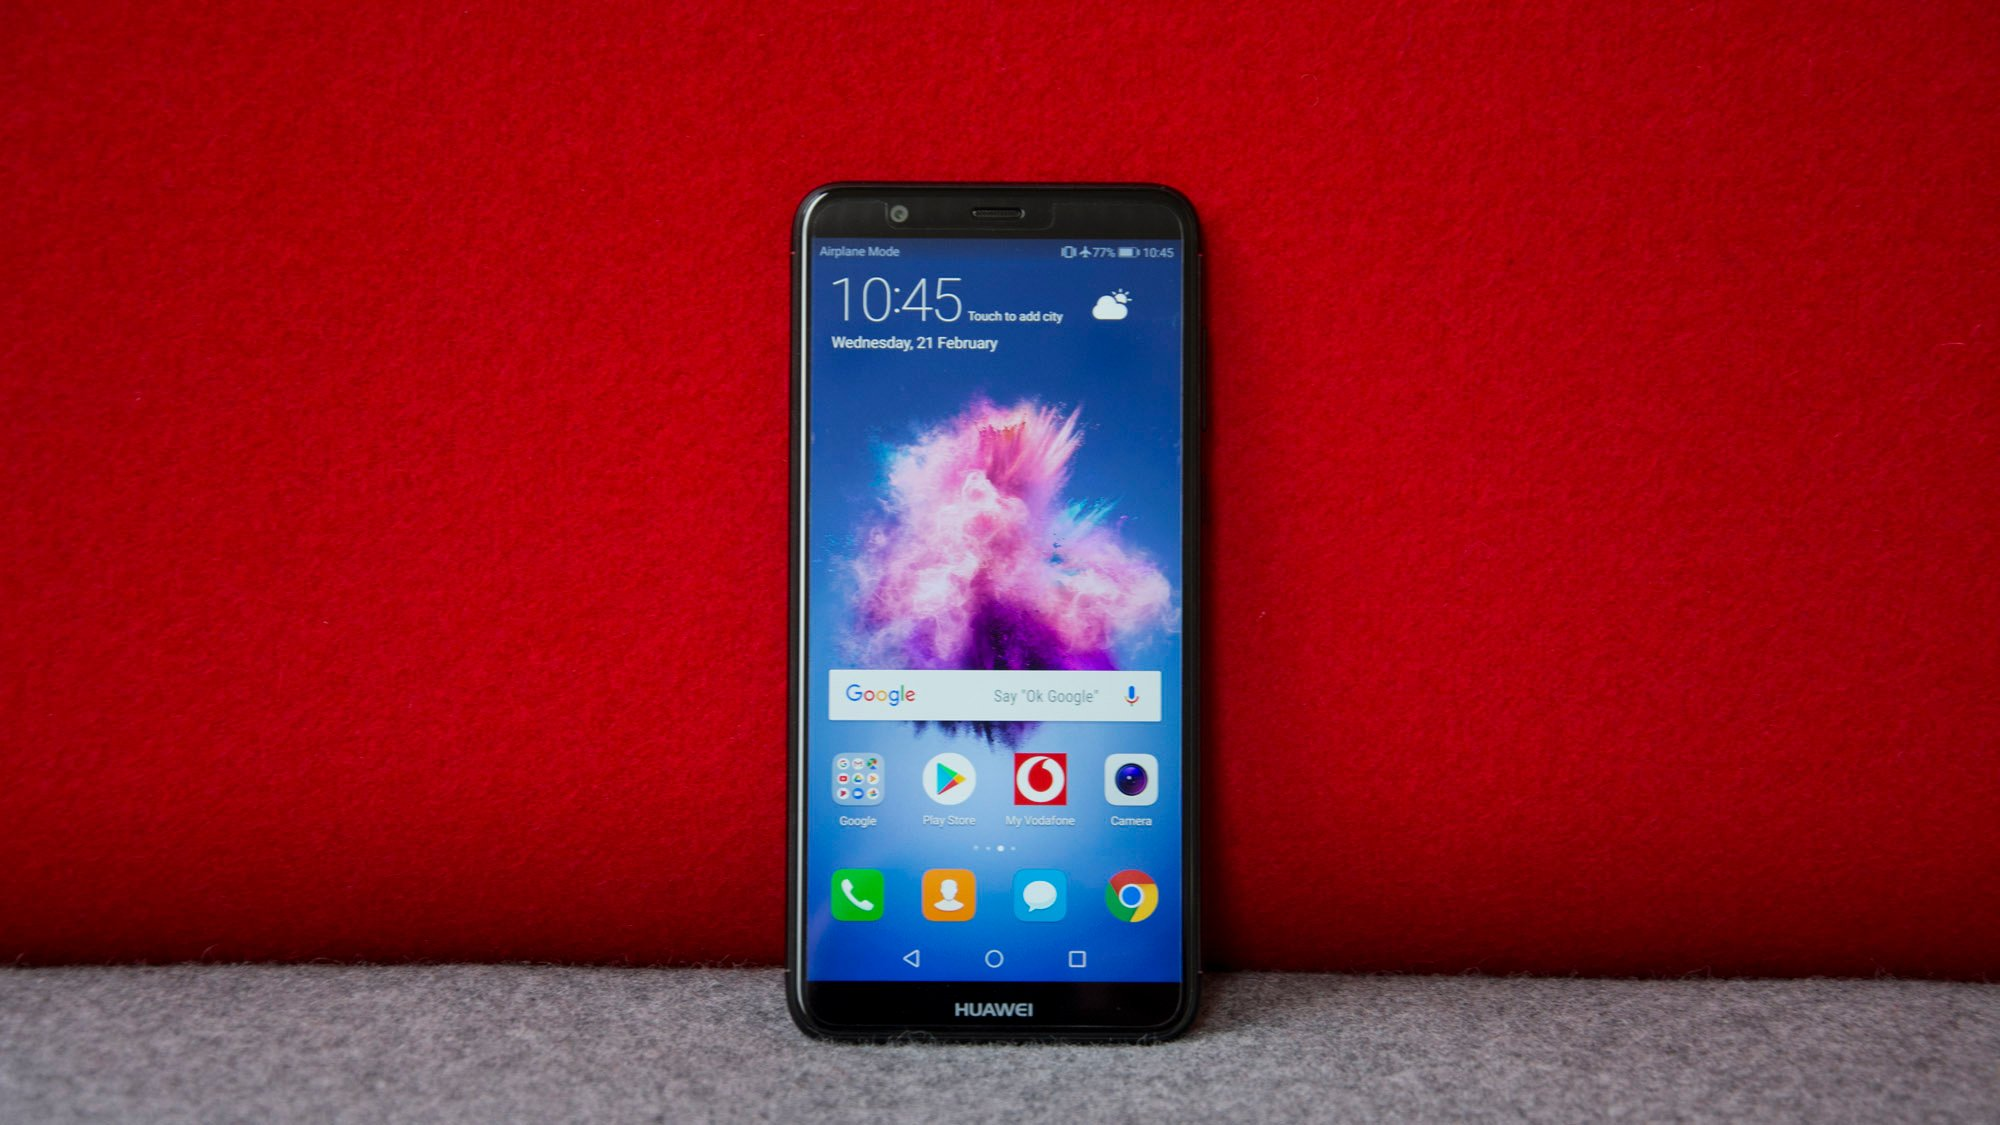 Huawei P Smart (2017) review: Price cuts makes the P Smart a